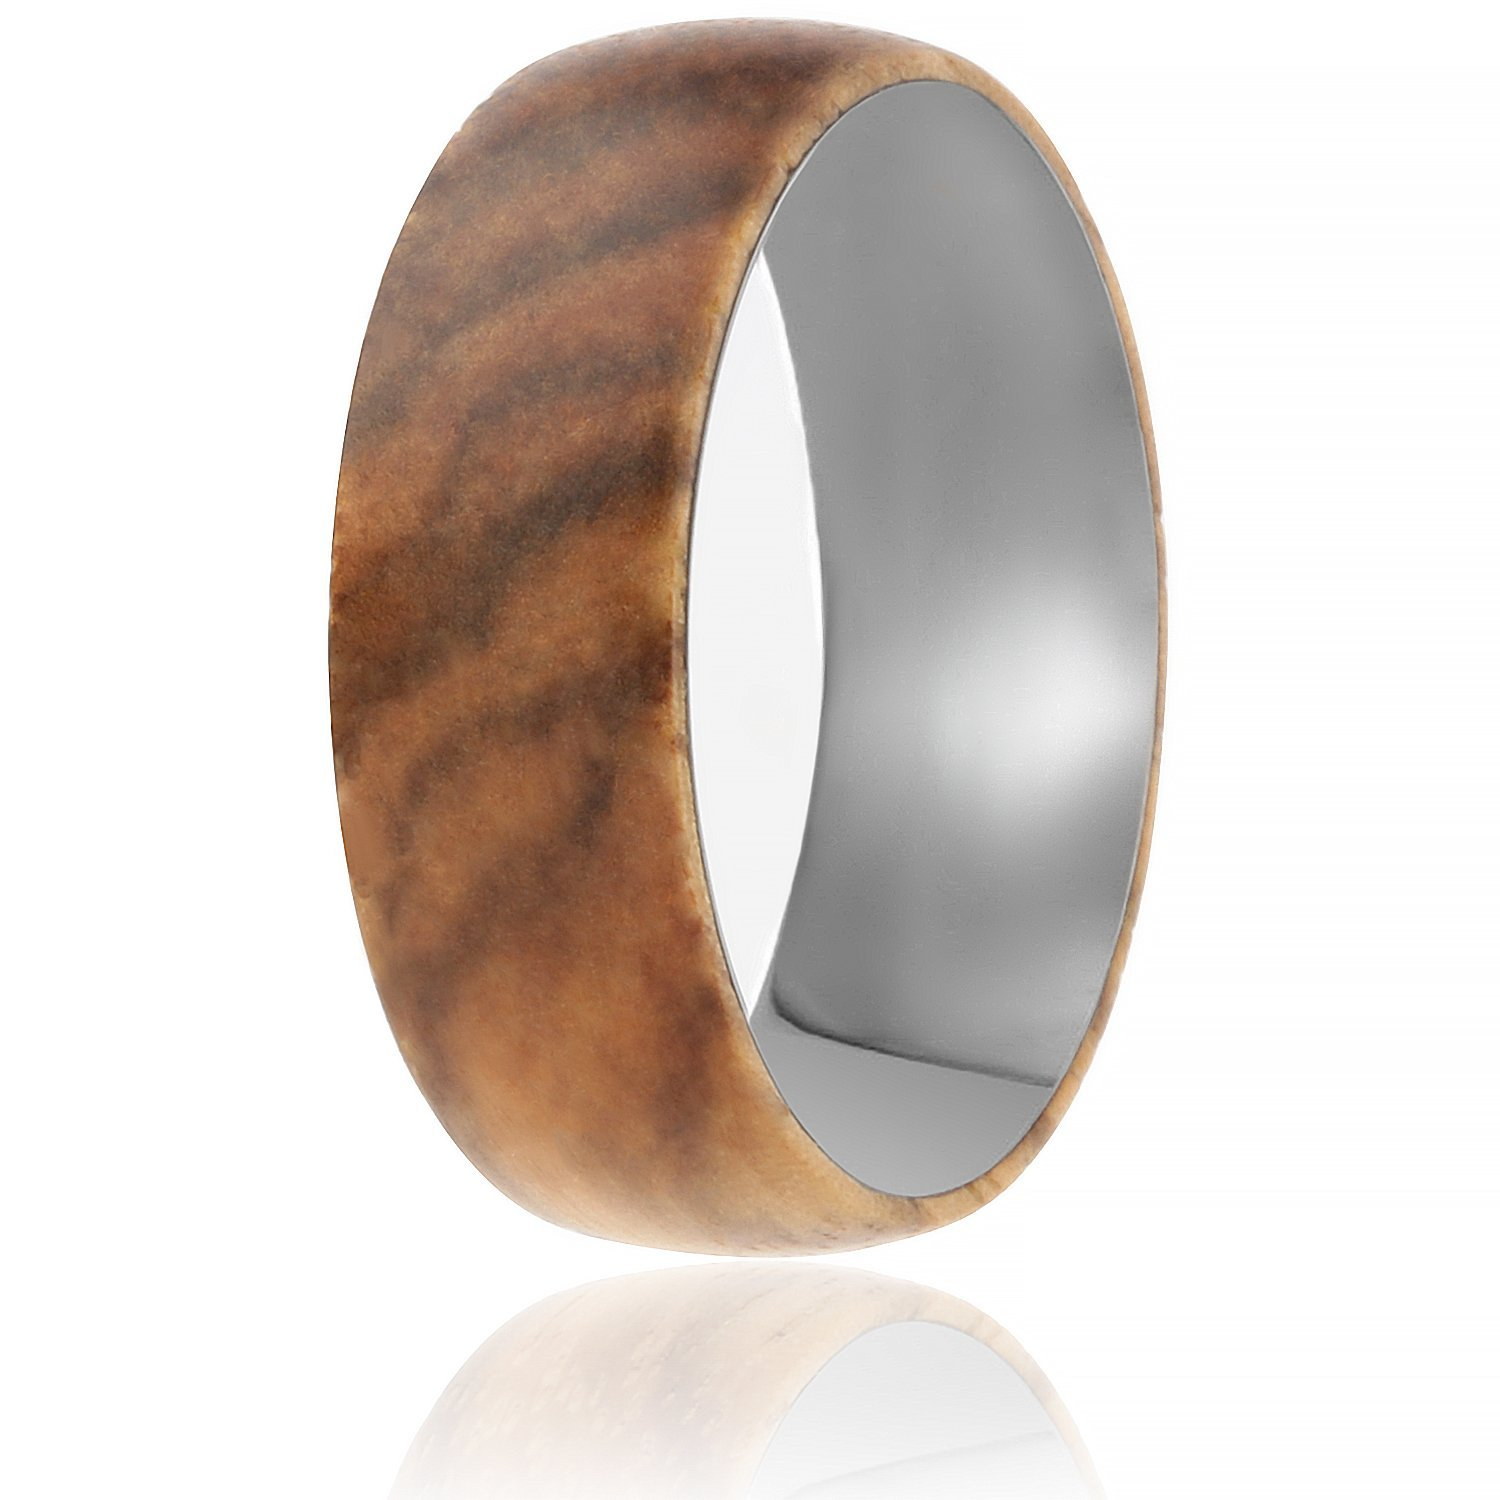 SOLEED Rings Wooden Wedding Band with Inner Tungsten Layer For Strength and Protection - Designed For Men and Women, 8mm Natural Zebra Wood Ring, Comfort Fit Design, Domed Top - Size 11